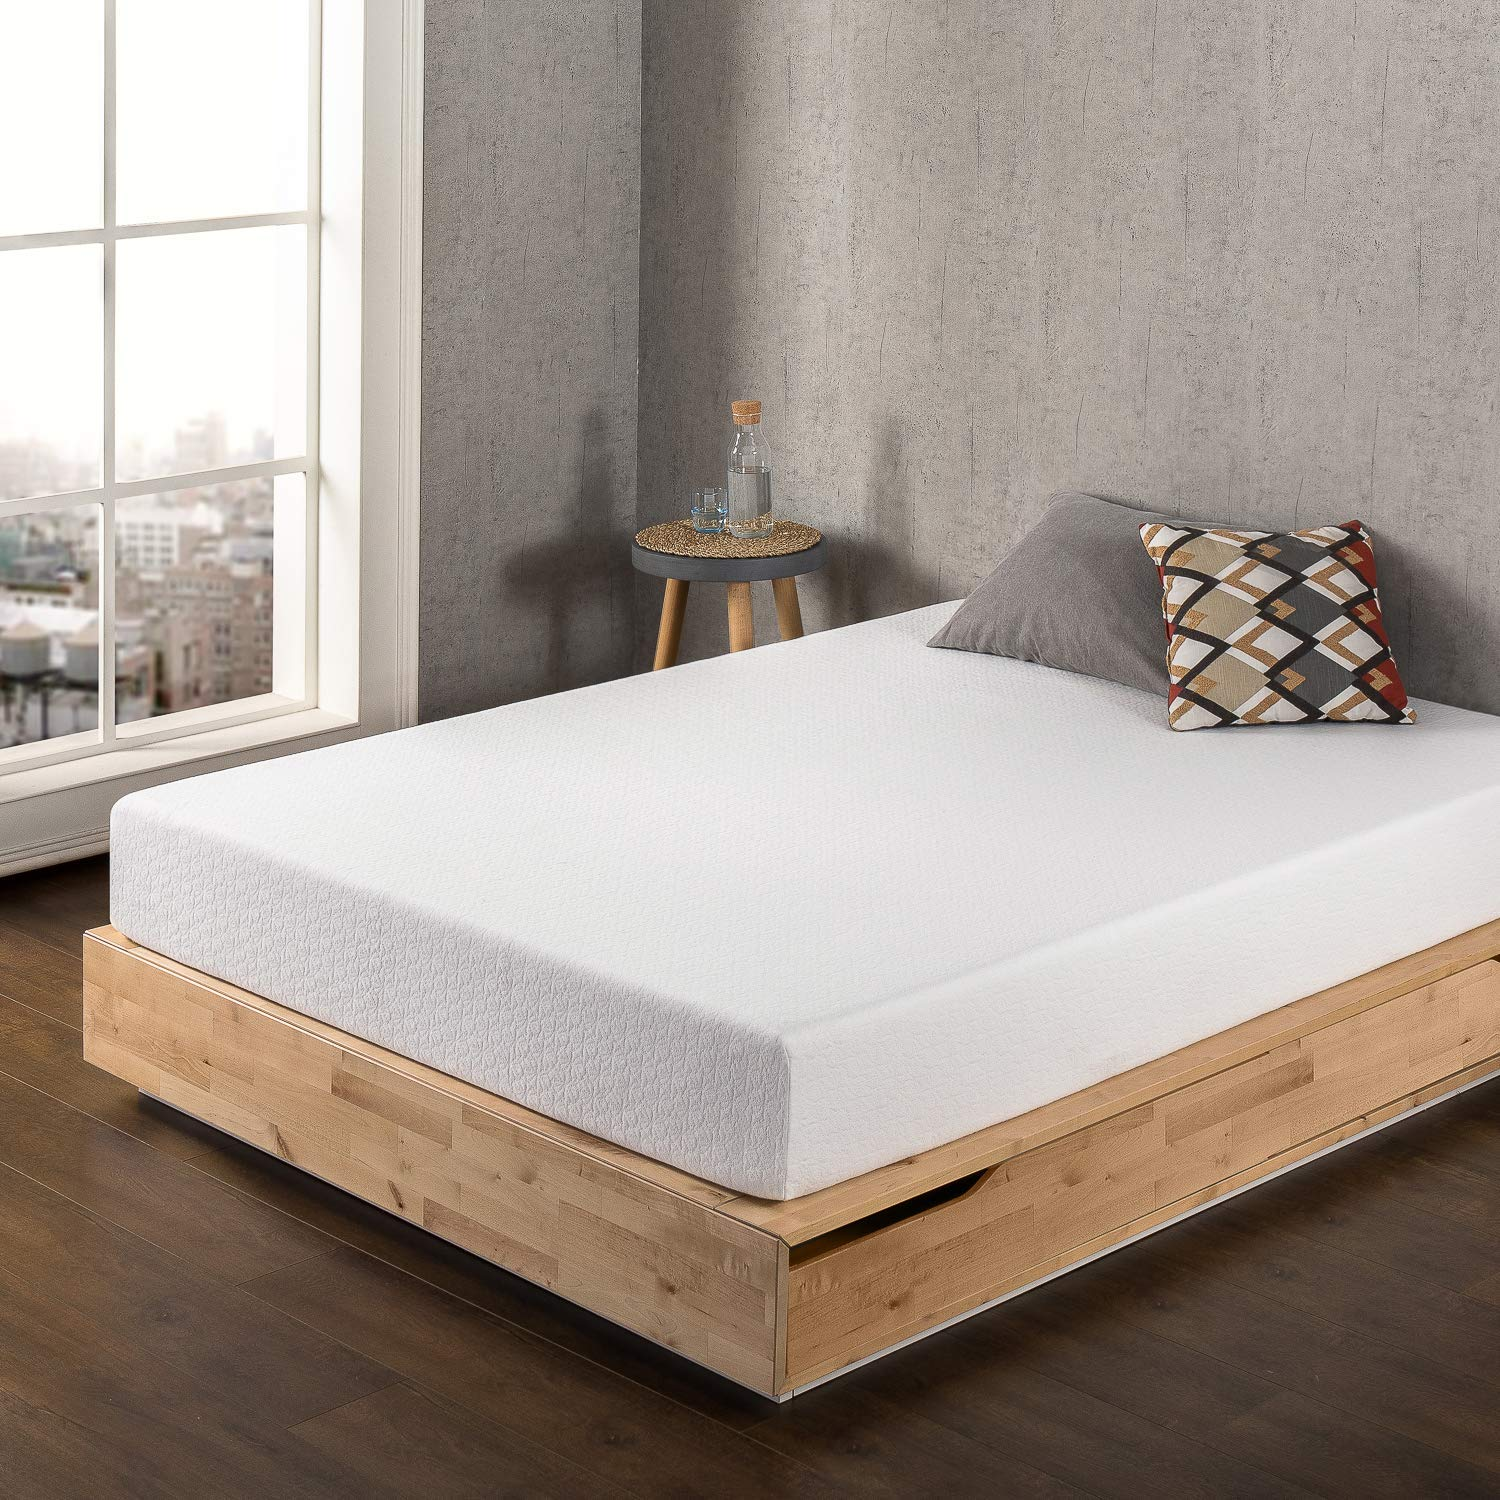 Best Price Mattress Memory Foam topratedhomeproducts